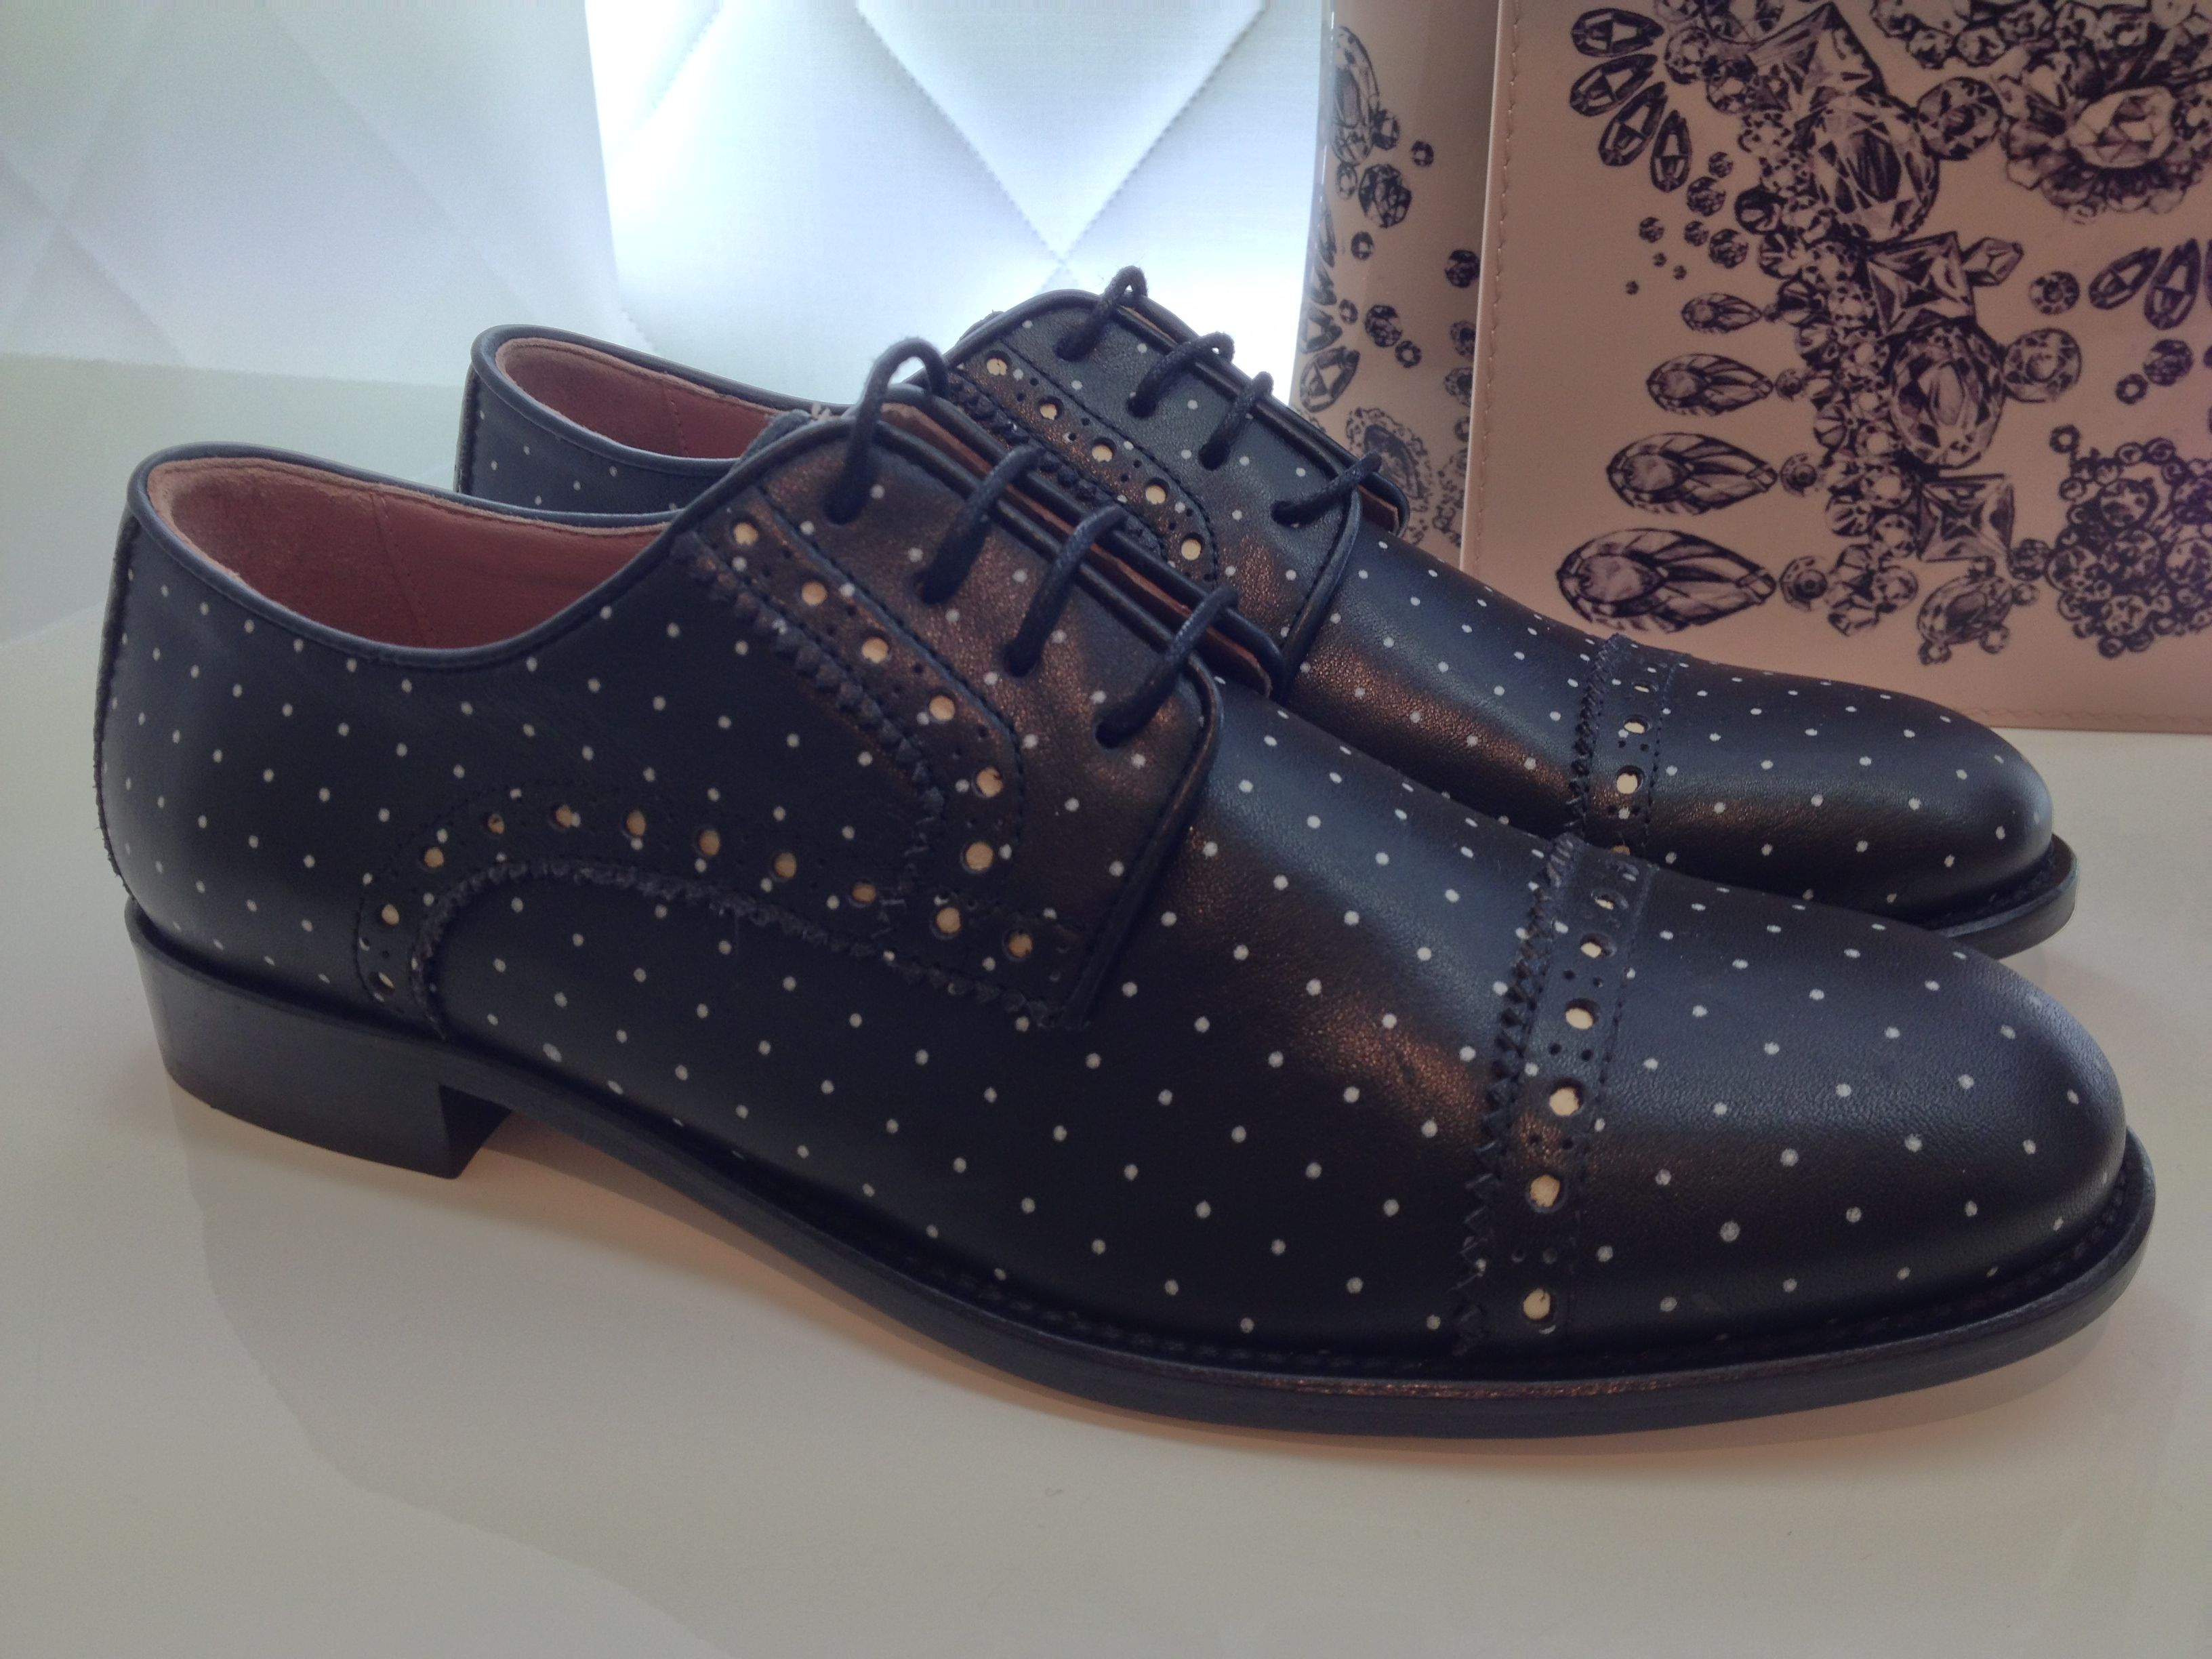 Red Valentino Brogues - polka dots give a playful update